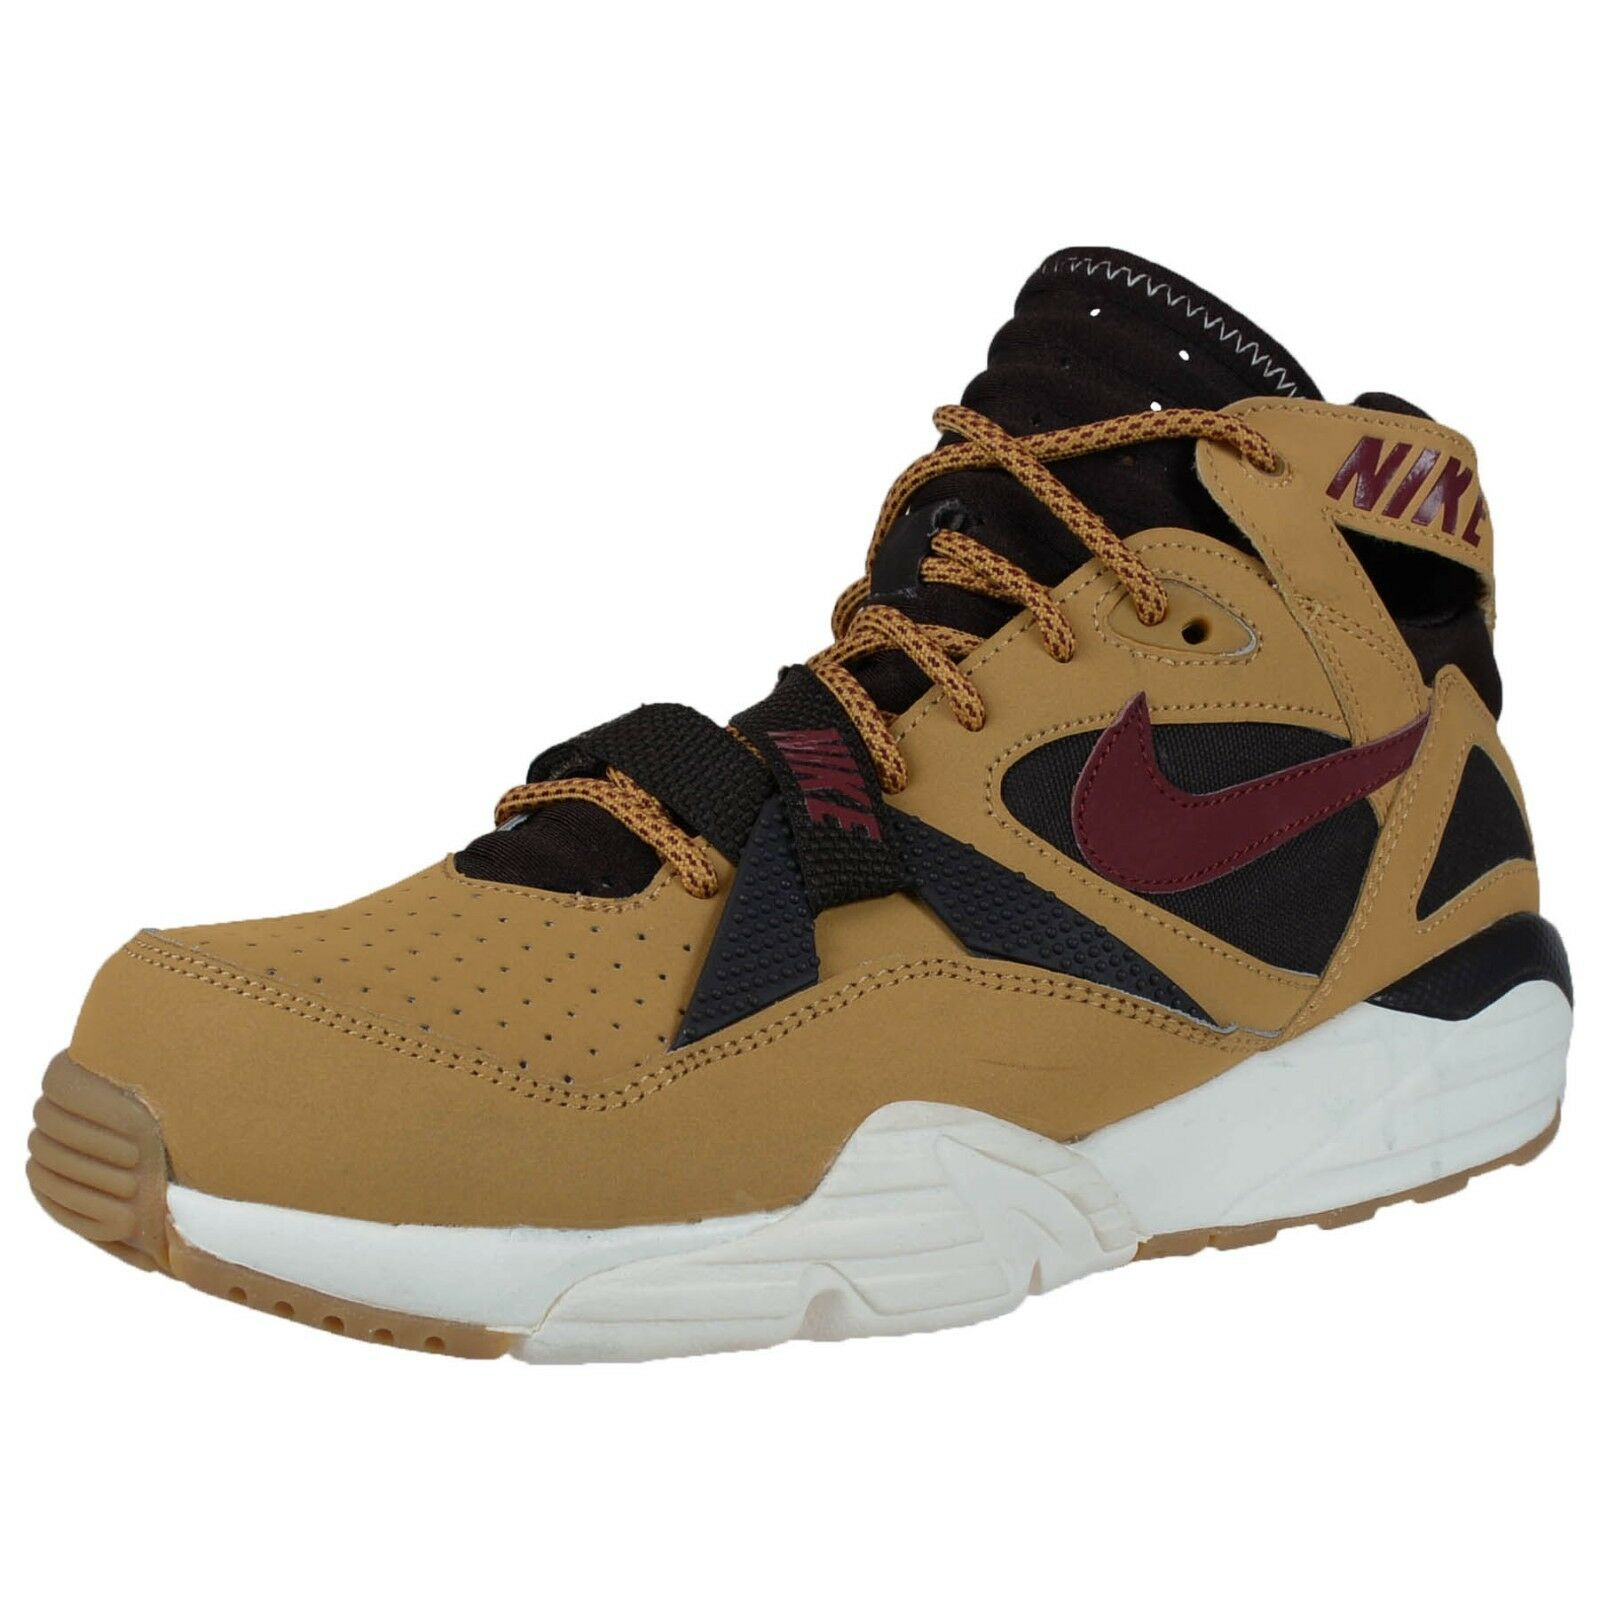 NIKE AIR TRAINER MAX '91 RETRO CROSS TRAINERS HAYSTACK TEAM RED BROWN 309748 700